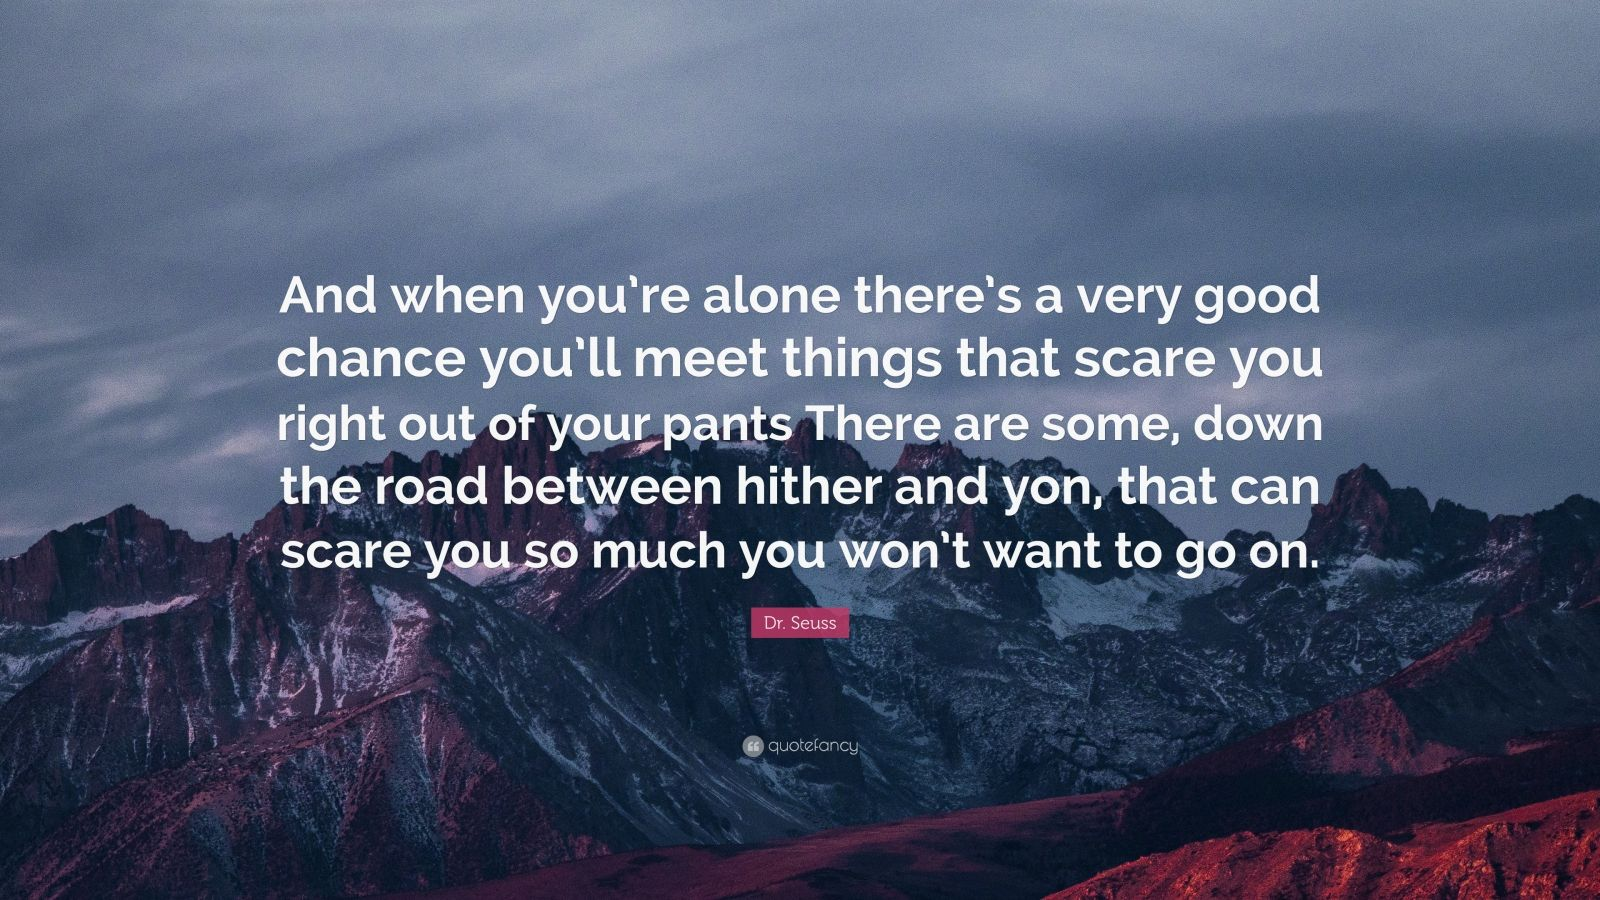 """Dr. Seuss Quote: """"And when you're alone there's a very good chance you'll meet things that scare you right out of your pants There are some, down the road between hither and yon, that can scare you so much you won't want to go on."""""""